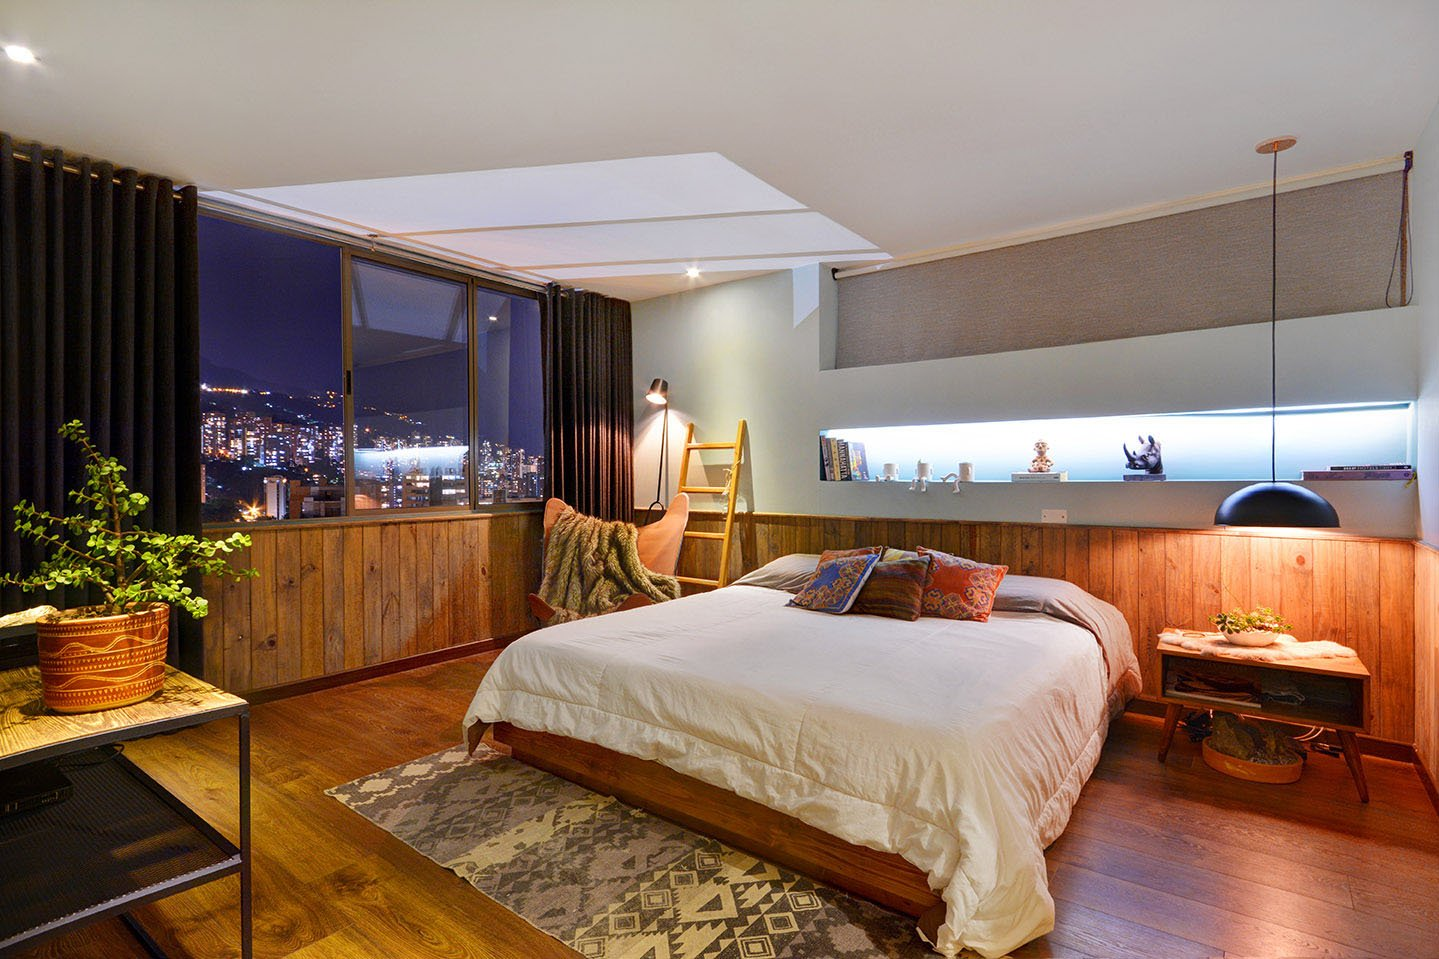 Bedroom Decoration Medellin